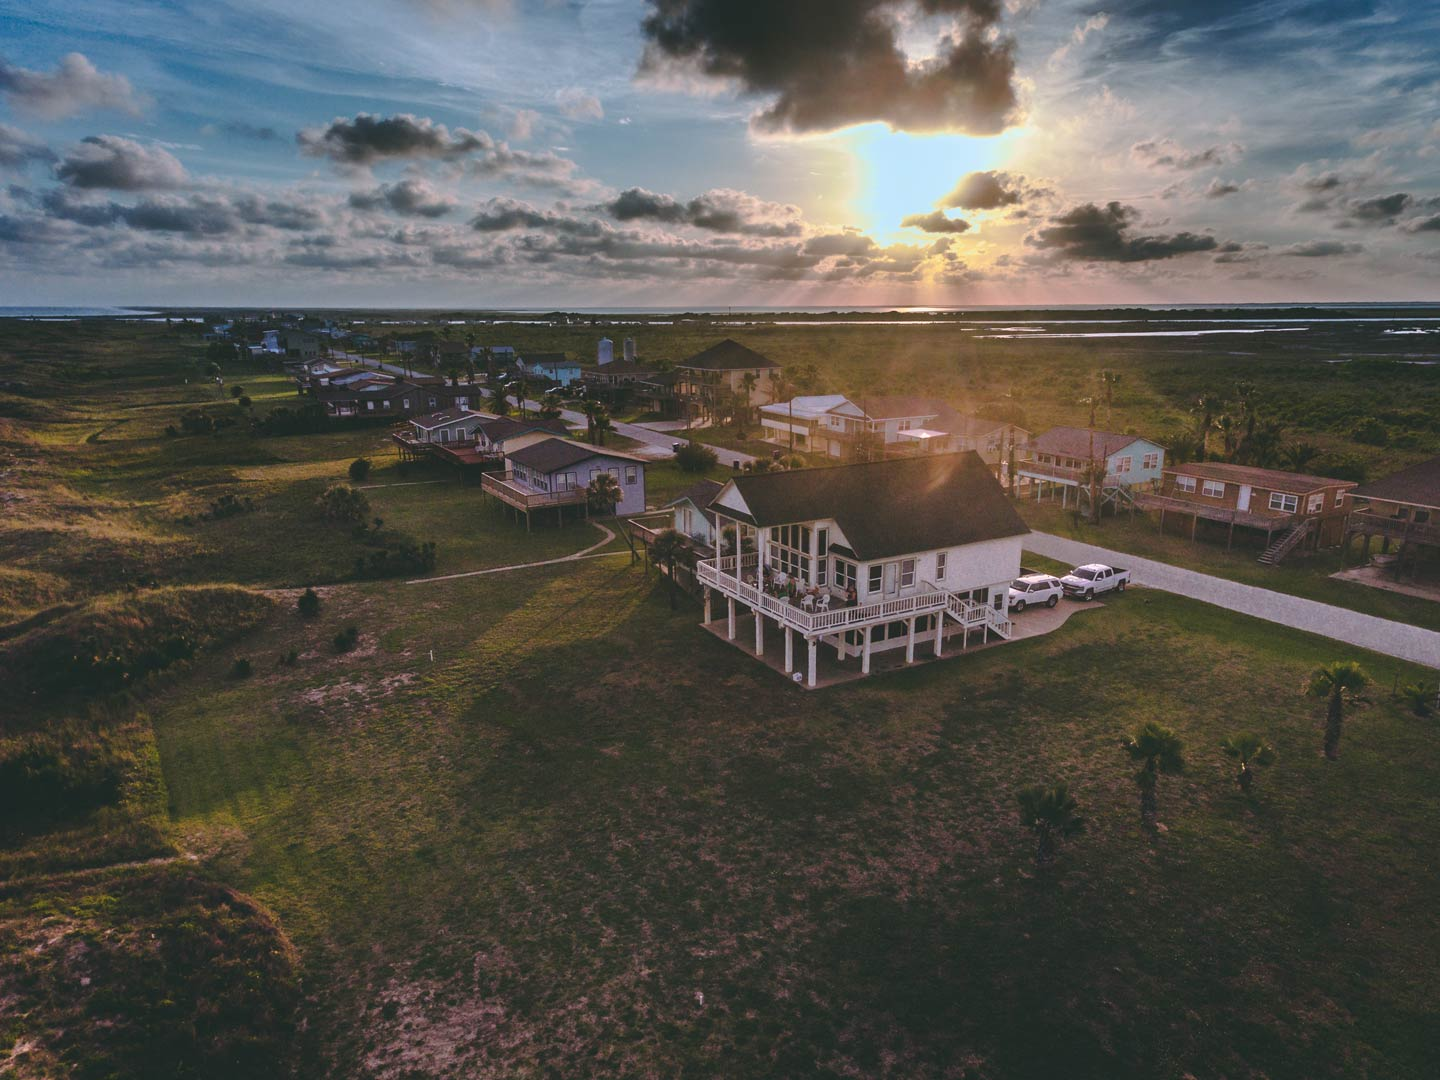 An aerial view of houses in Matagorda